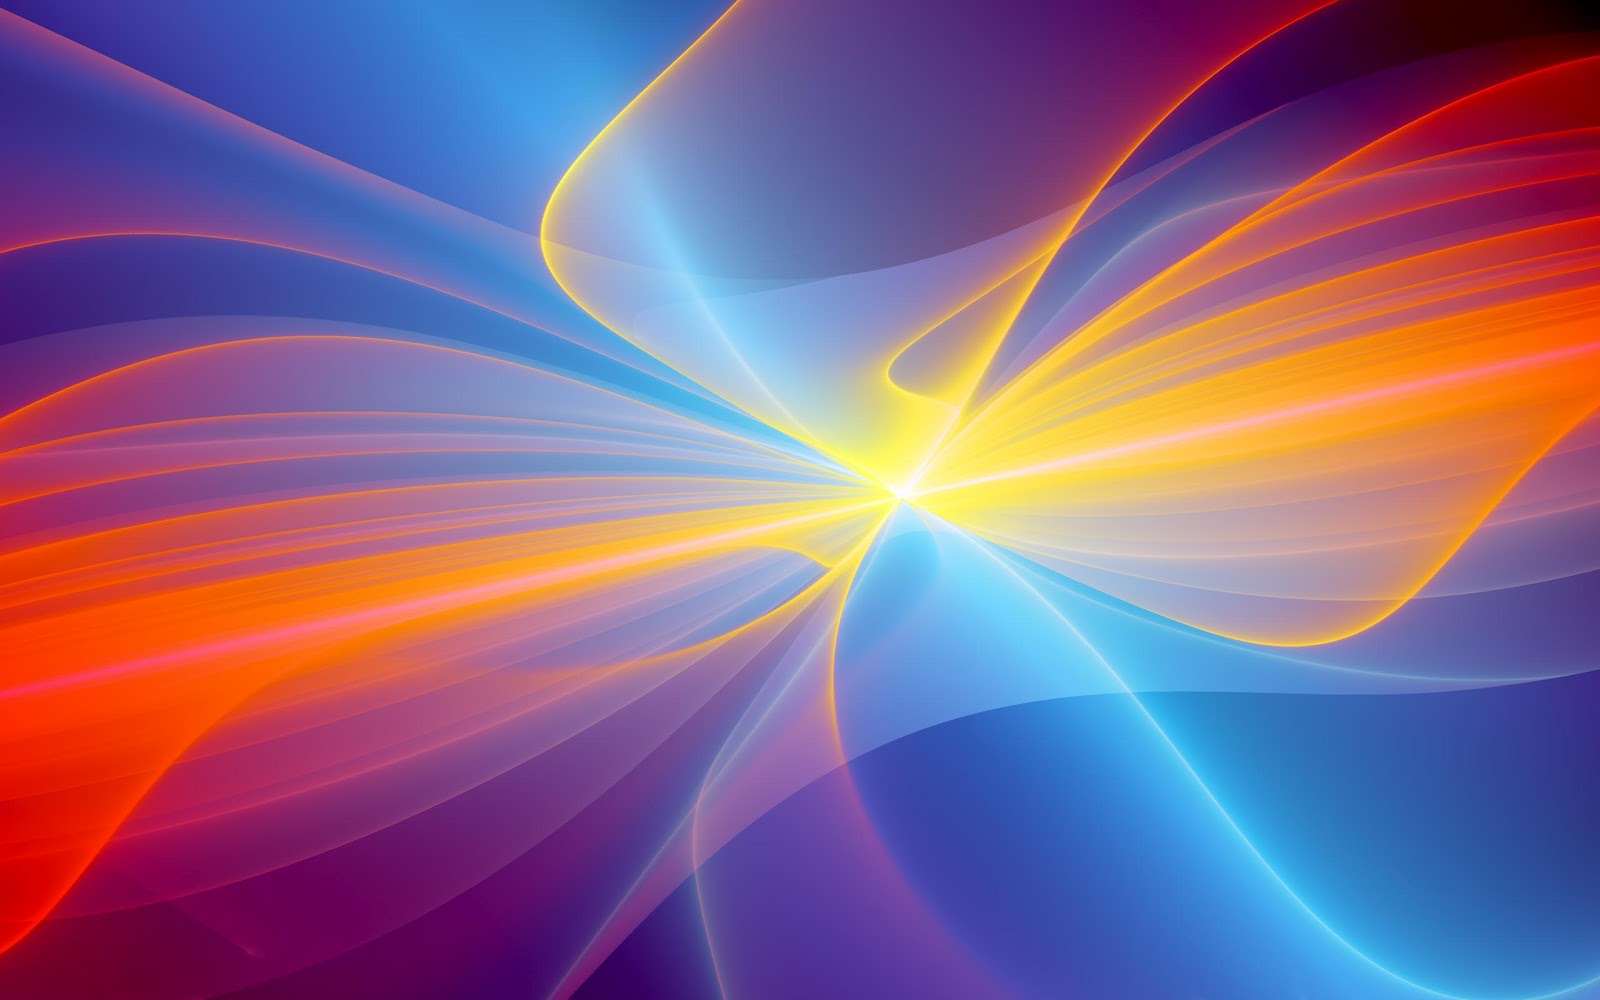 Fantastic Wallpaper Mac Abstract - Free+Abstract+Wallpapers+For+Apple+Desktop  You Should Have_931874.jpg